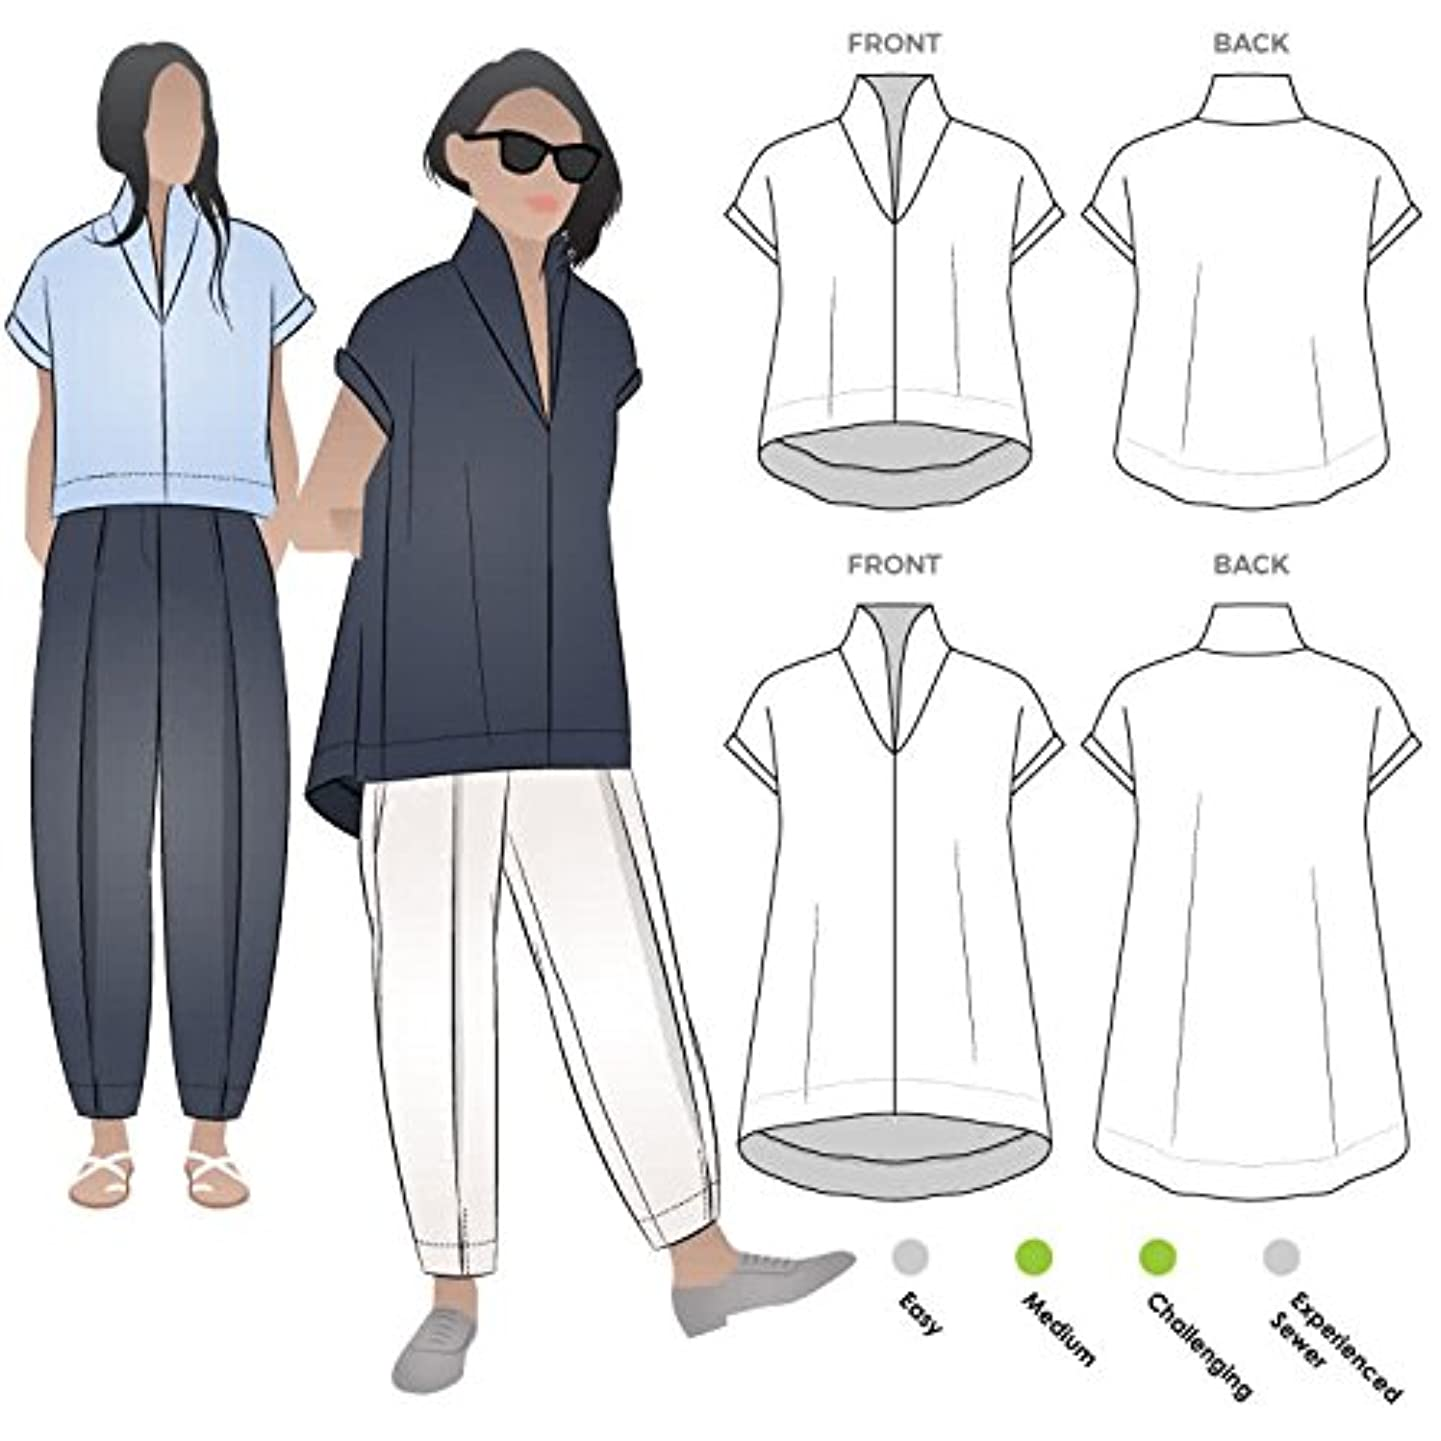 Style Arc Sewing Pattern - Teddy Designer Top (Sizes 18-30) - Click for Other Sizes Available